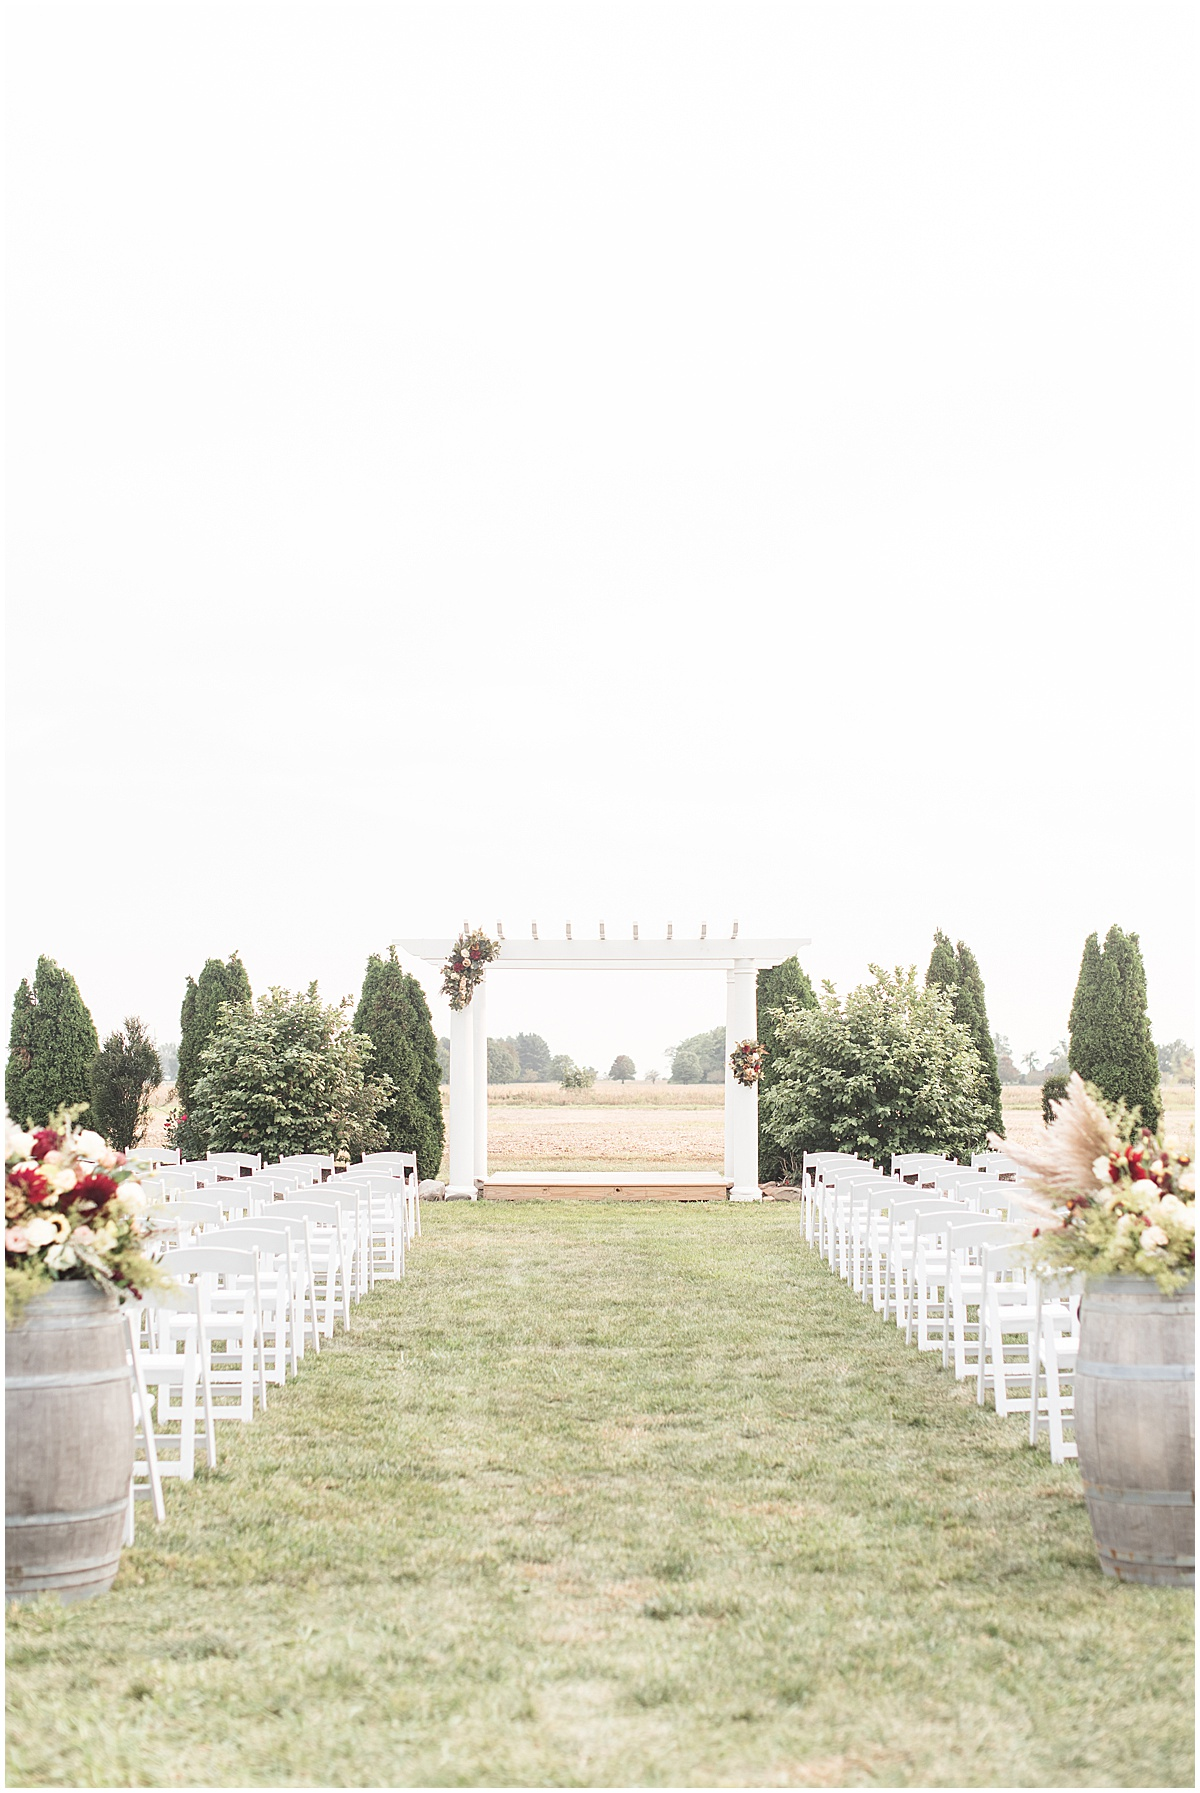 Ceremony detail photos at Meadow Springs Manor wedding in Francesville, Indiana